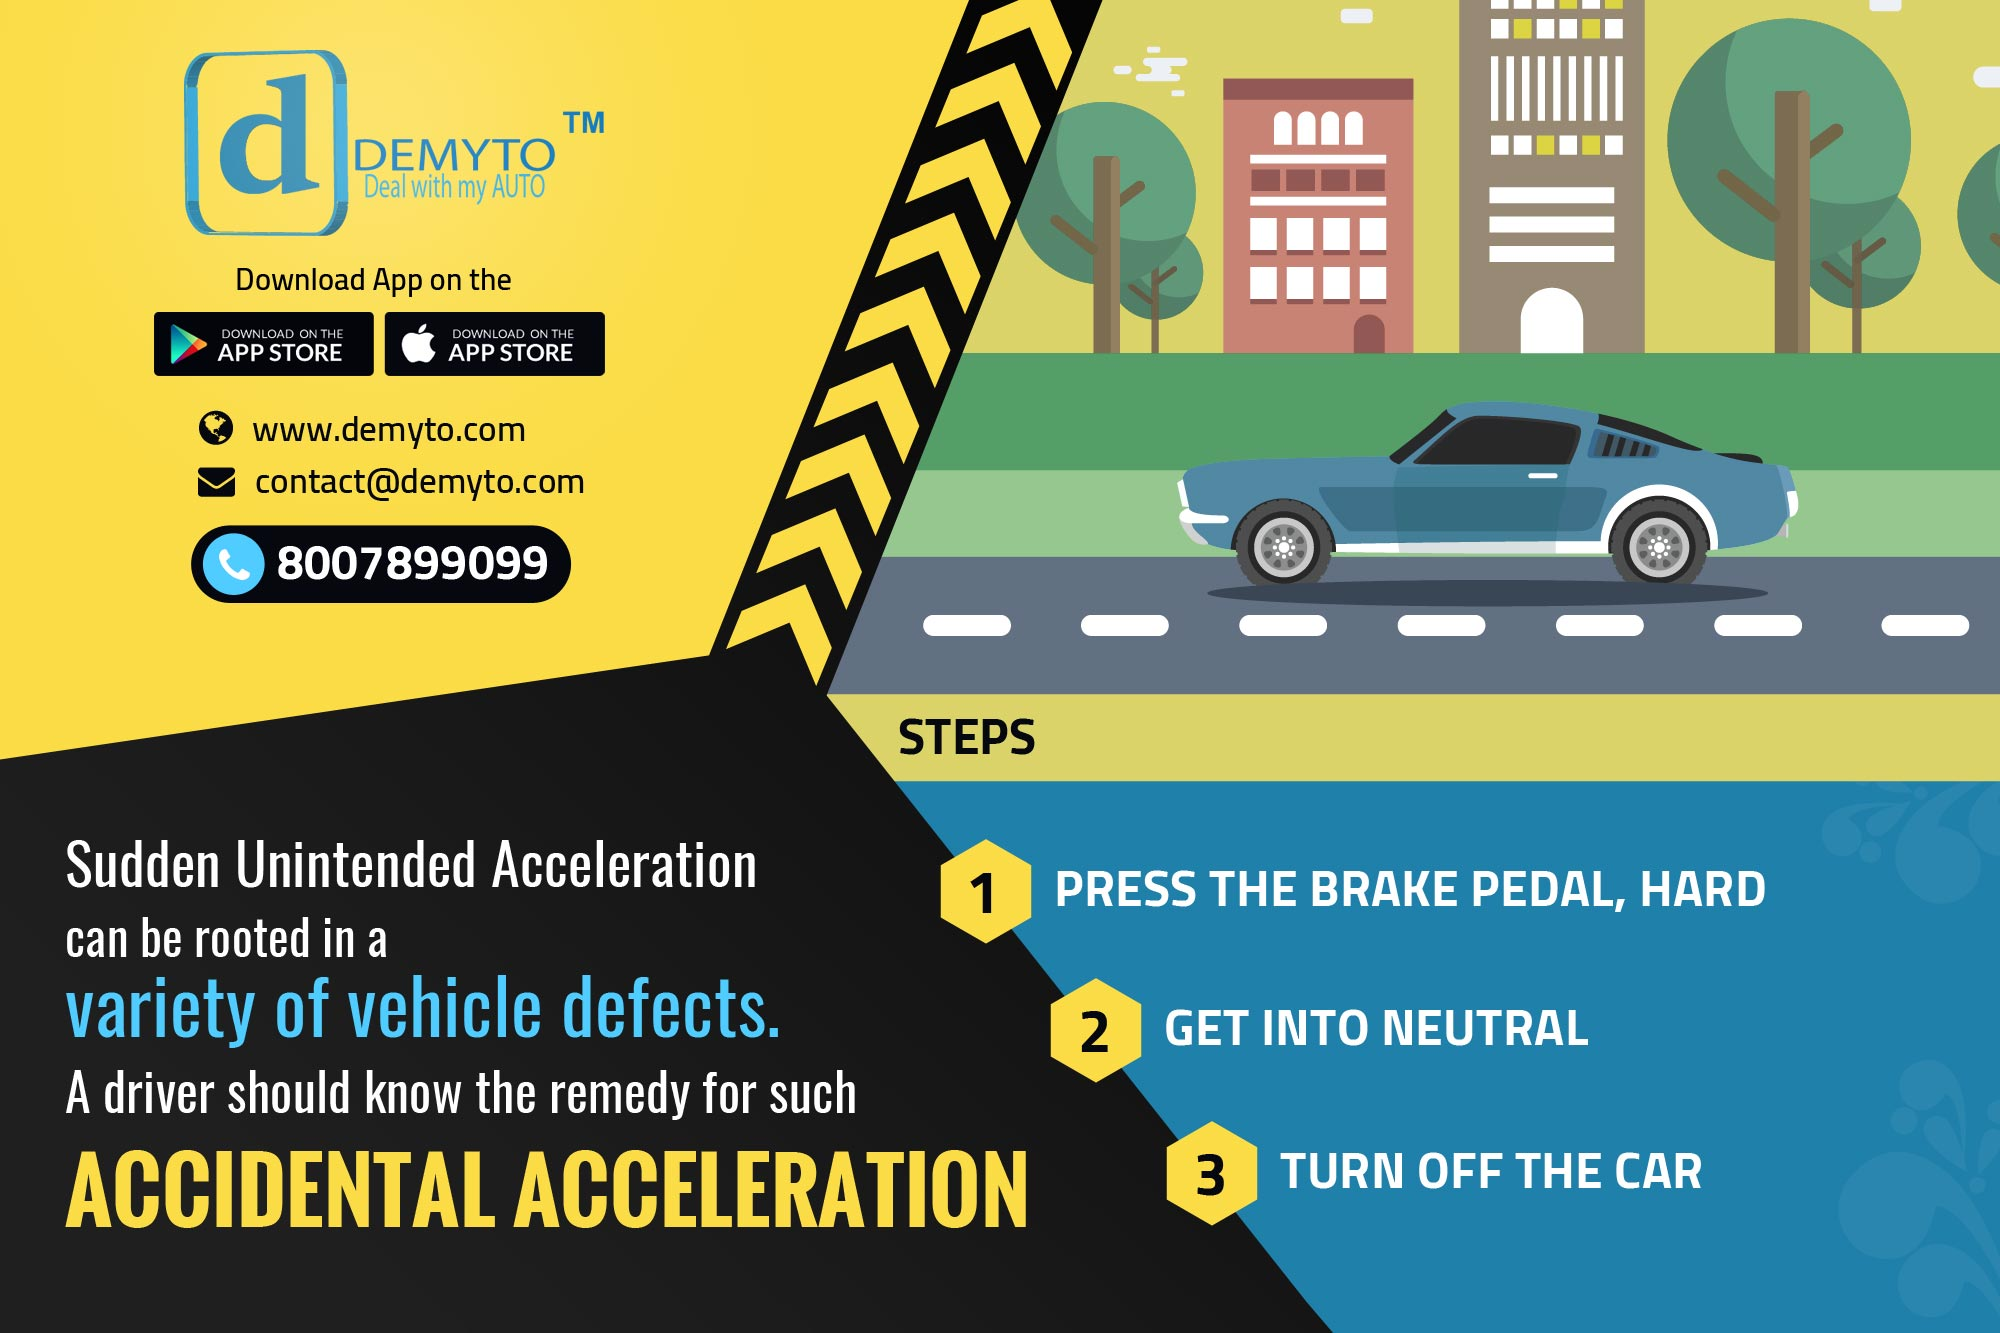 A Rudimentary Strategy to Stop Sudden Unintended Acceleration